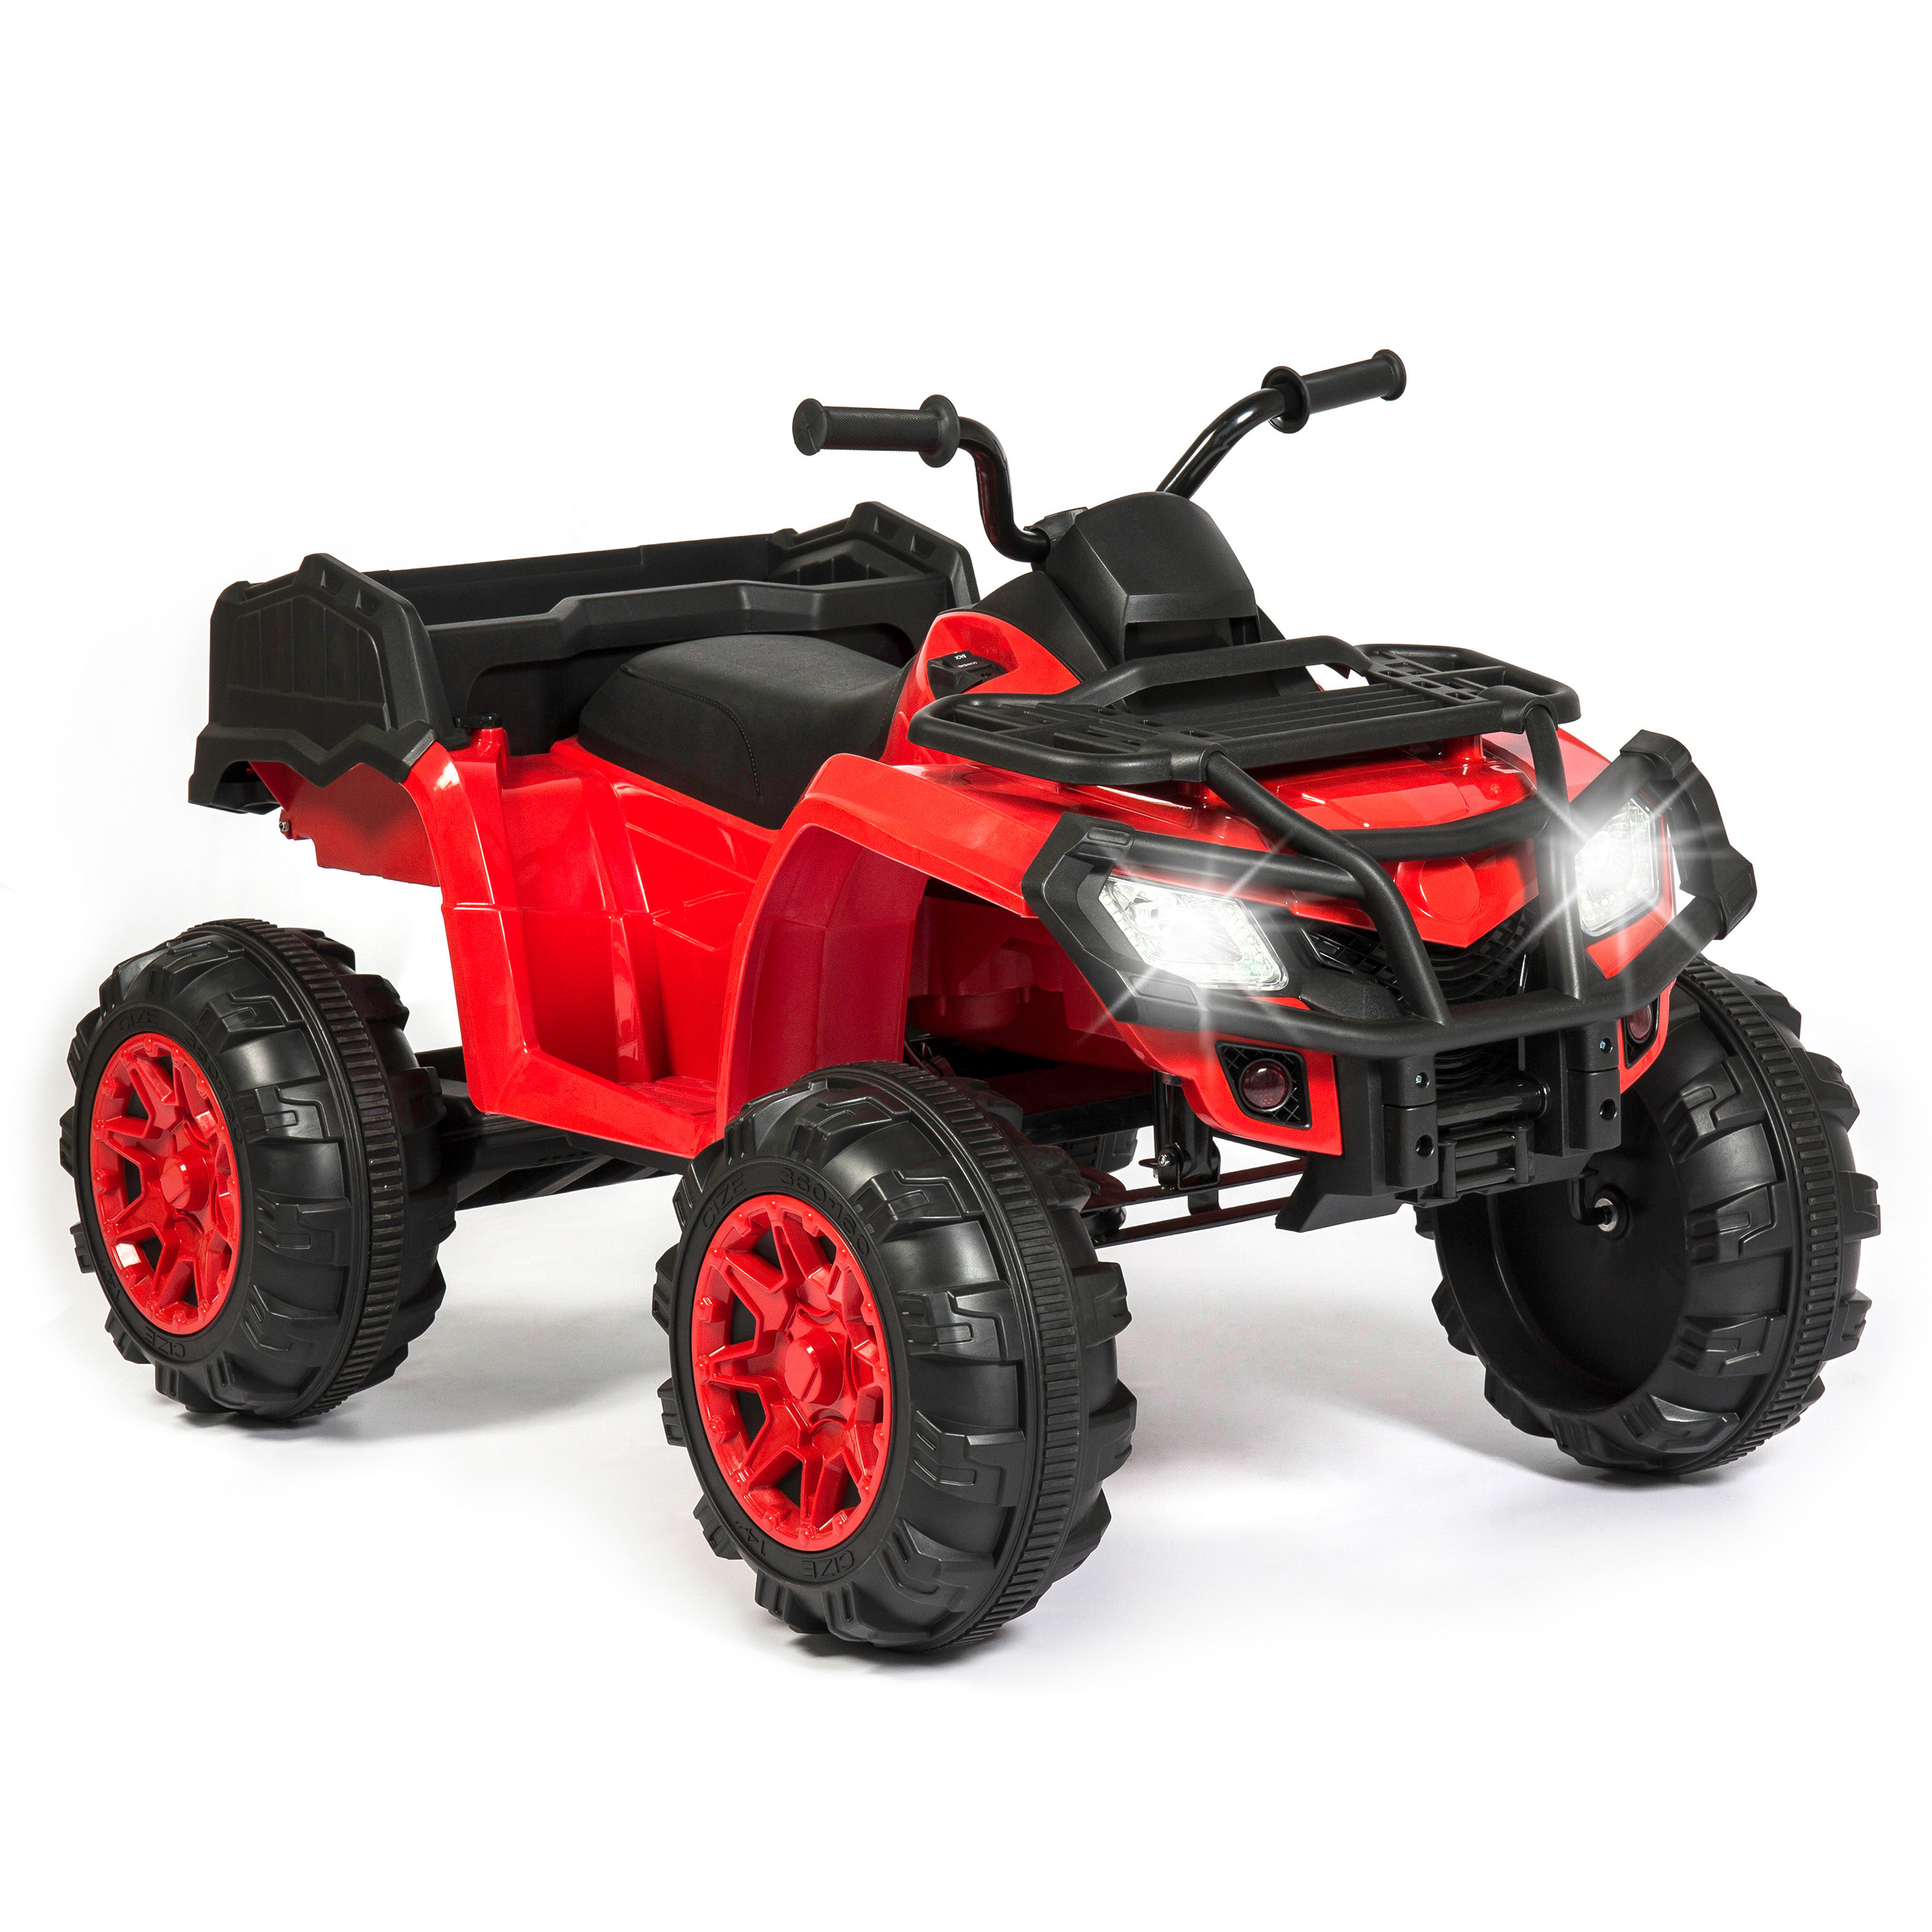 Best Choice Products 12V Kids Powered Large ATV Quad 4-Wheeler Ride-On Car w/ 2 Speeds, Spring Suspension, MP3, Lights, Storage - Red